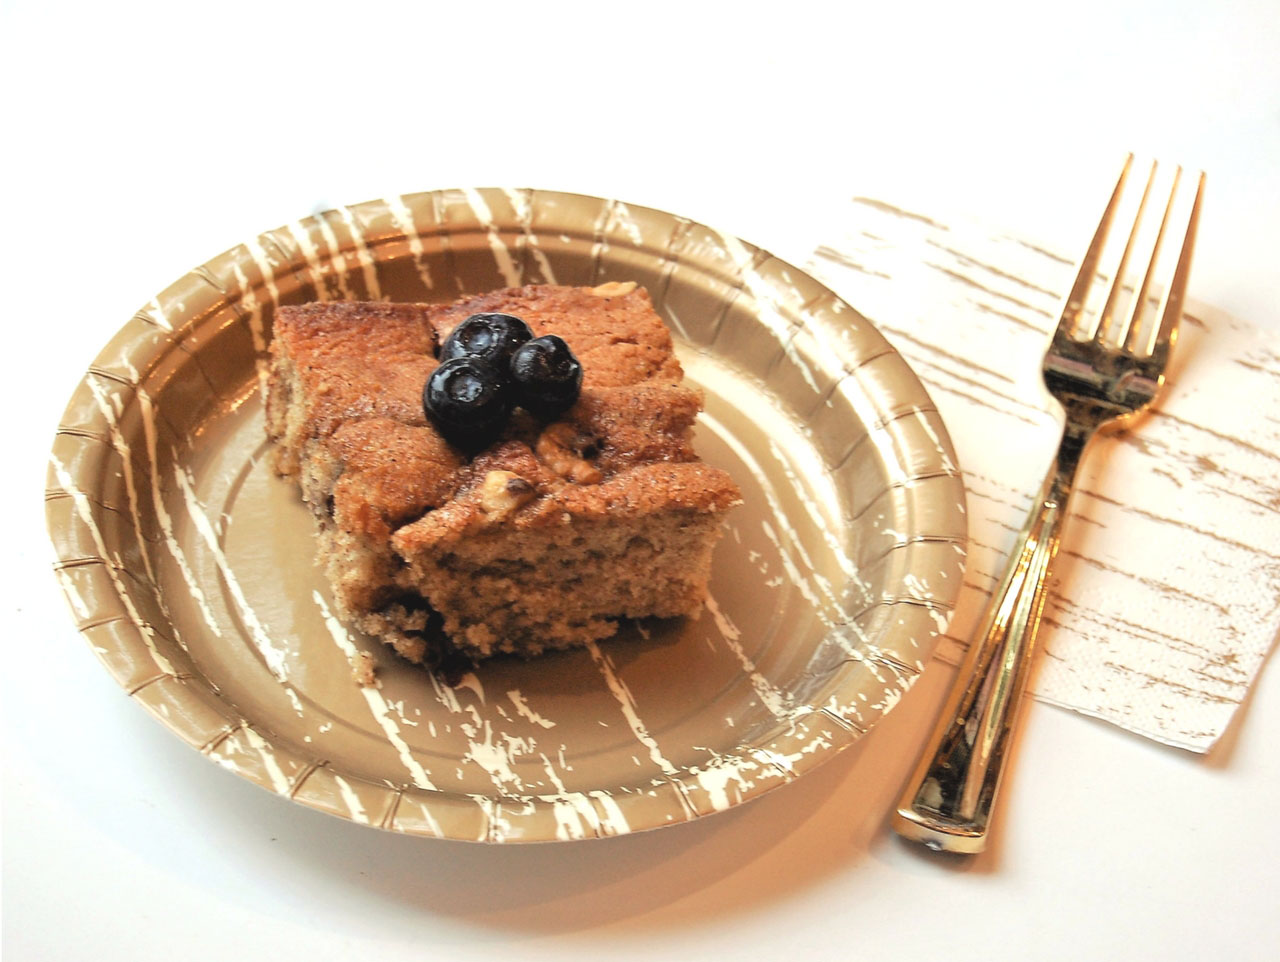 Copy of Copy of Blueberry Coffee Cake - Step image 6